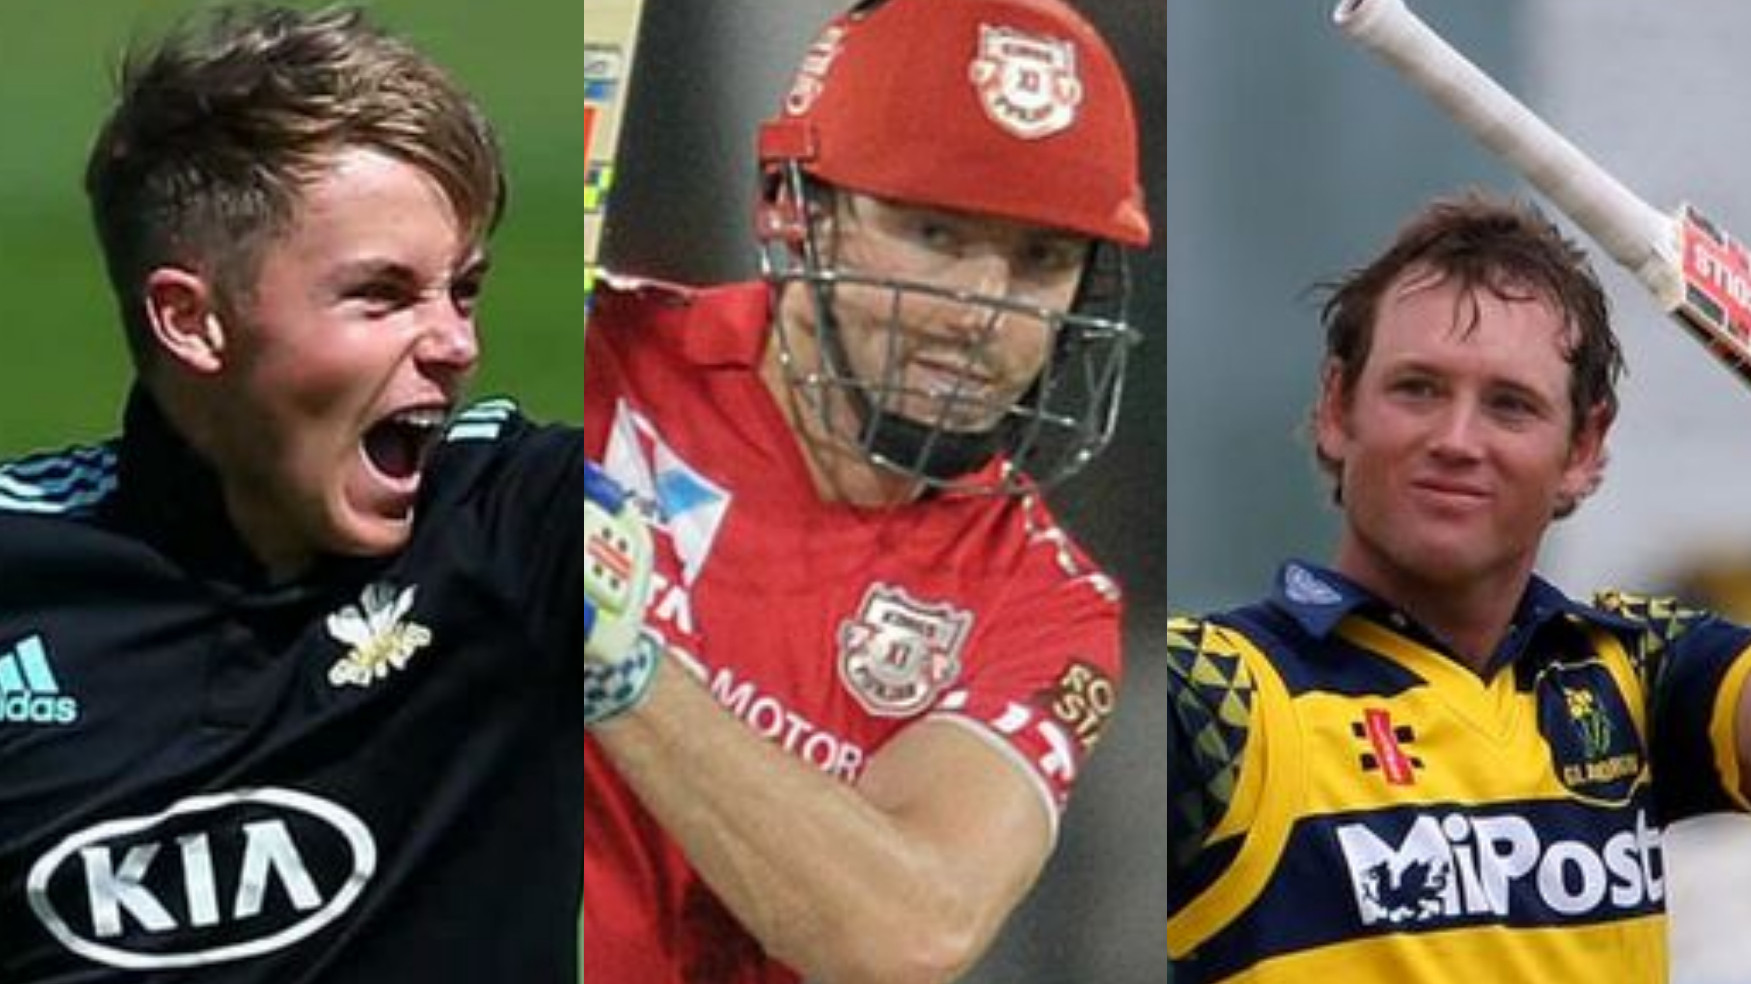 IPL 2019 Auction: Set 8, 9 10,11 and 12 - Colin Ingram gets 6.40 cr bid from DC; Sam Curran goes to KXIP for 7.20 cr